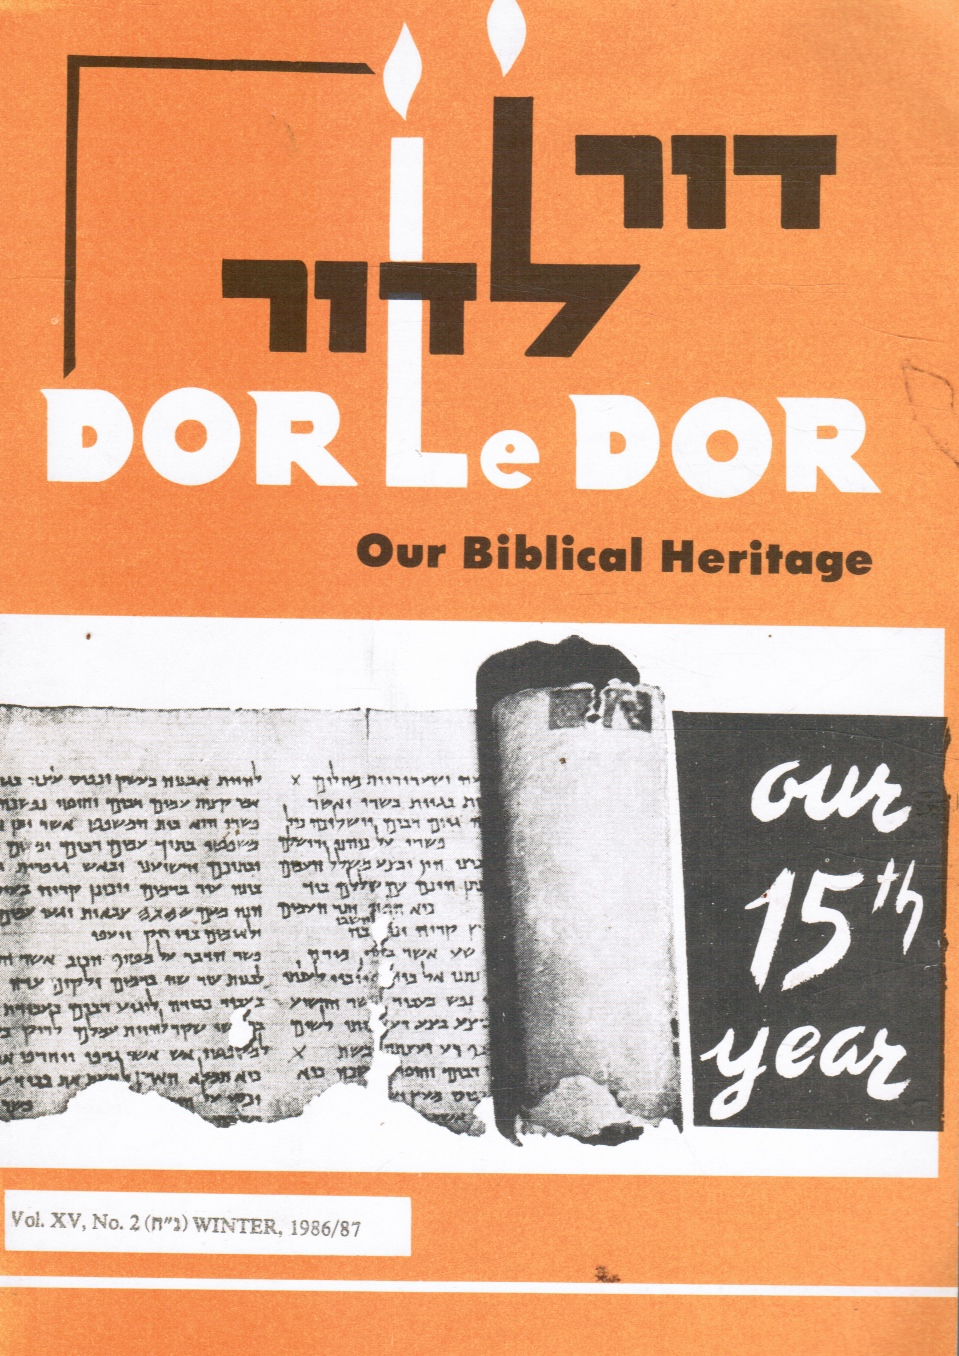 Image for Dor Le Dor Our Biblical Heritage Vol.XV, No 2 Winter 1986/87